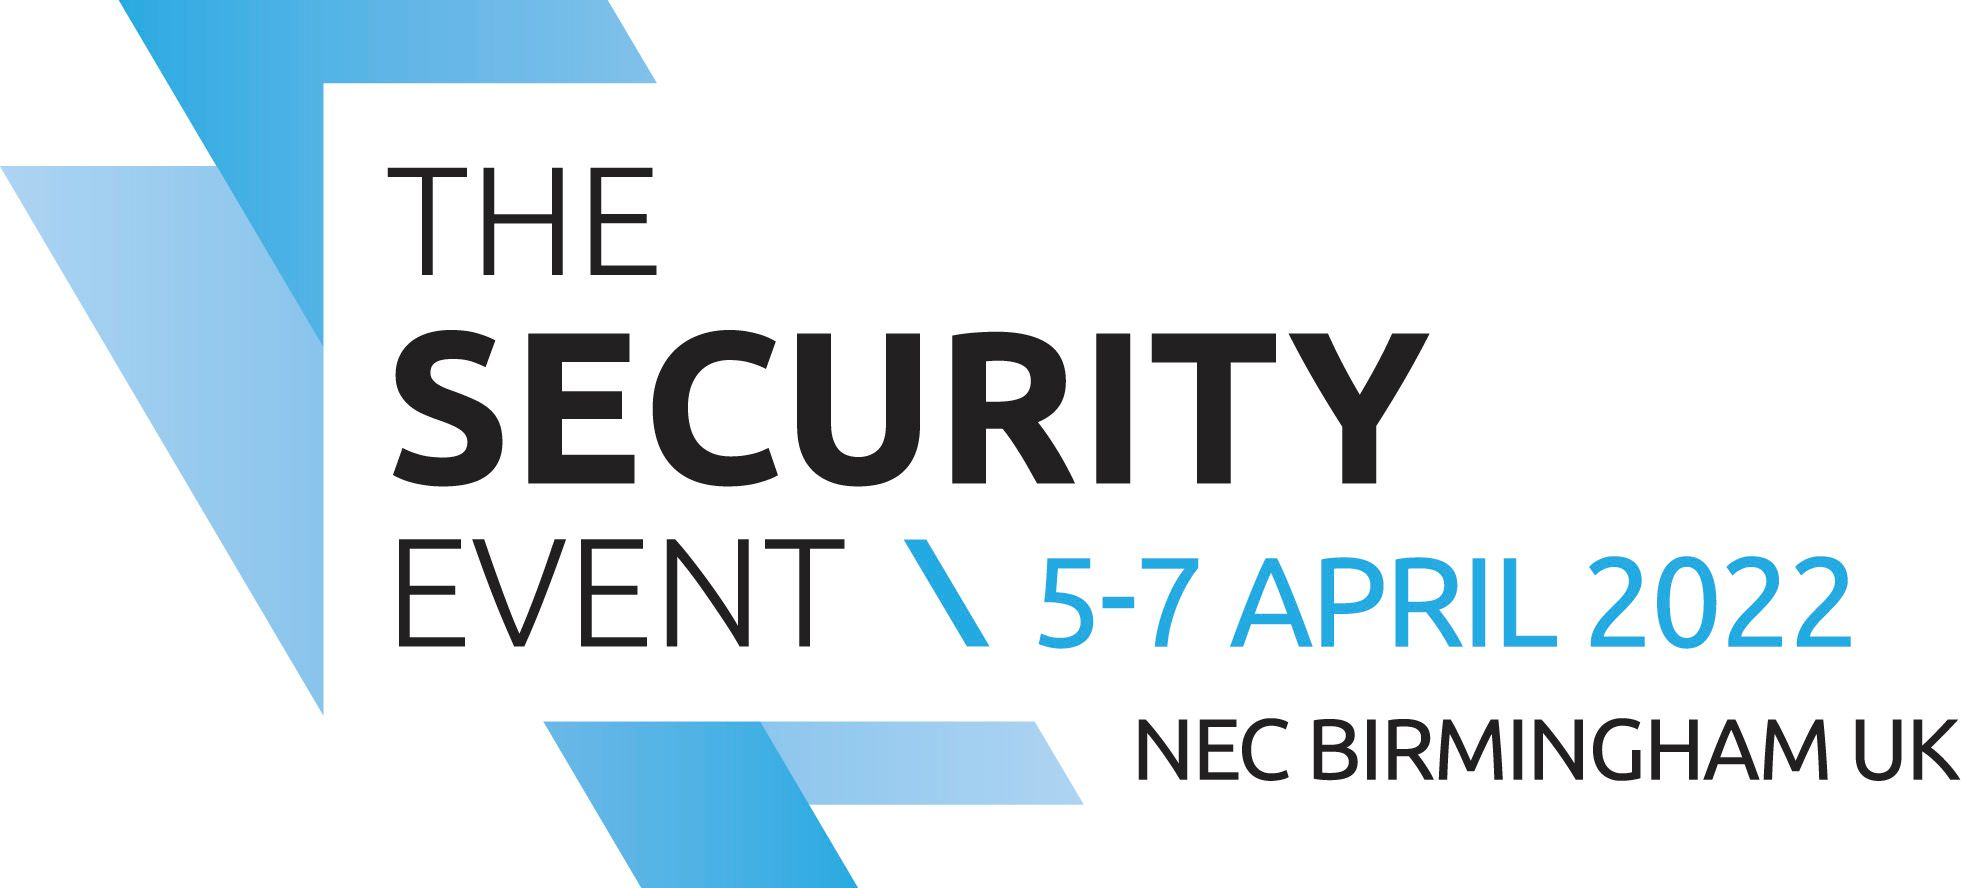 The Security Event 2022